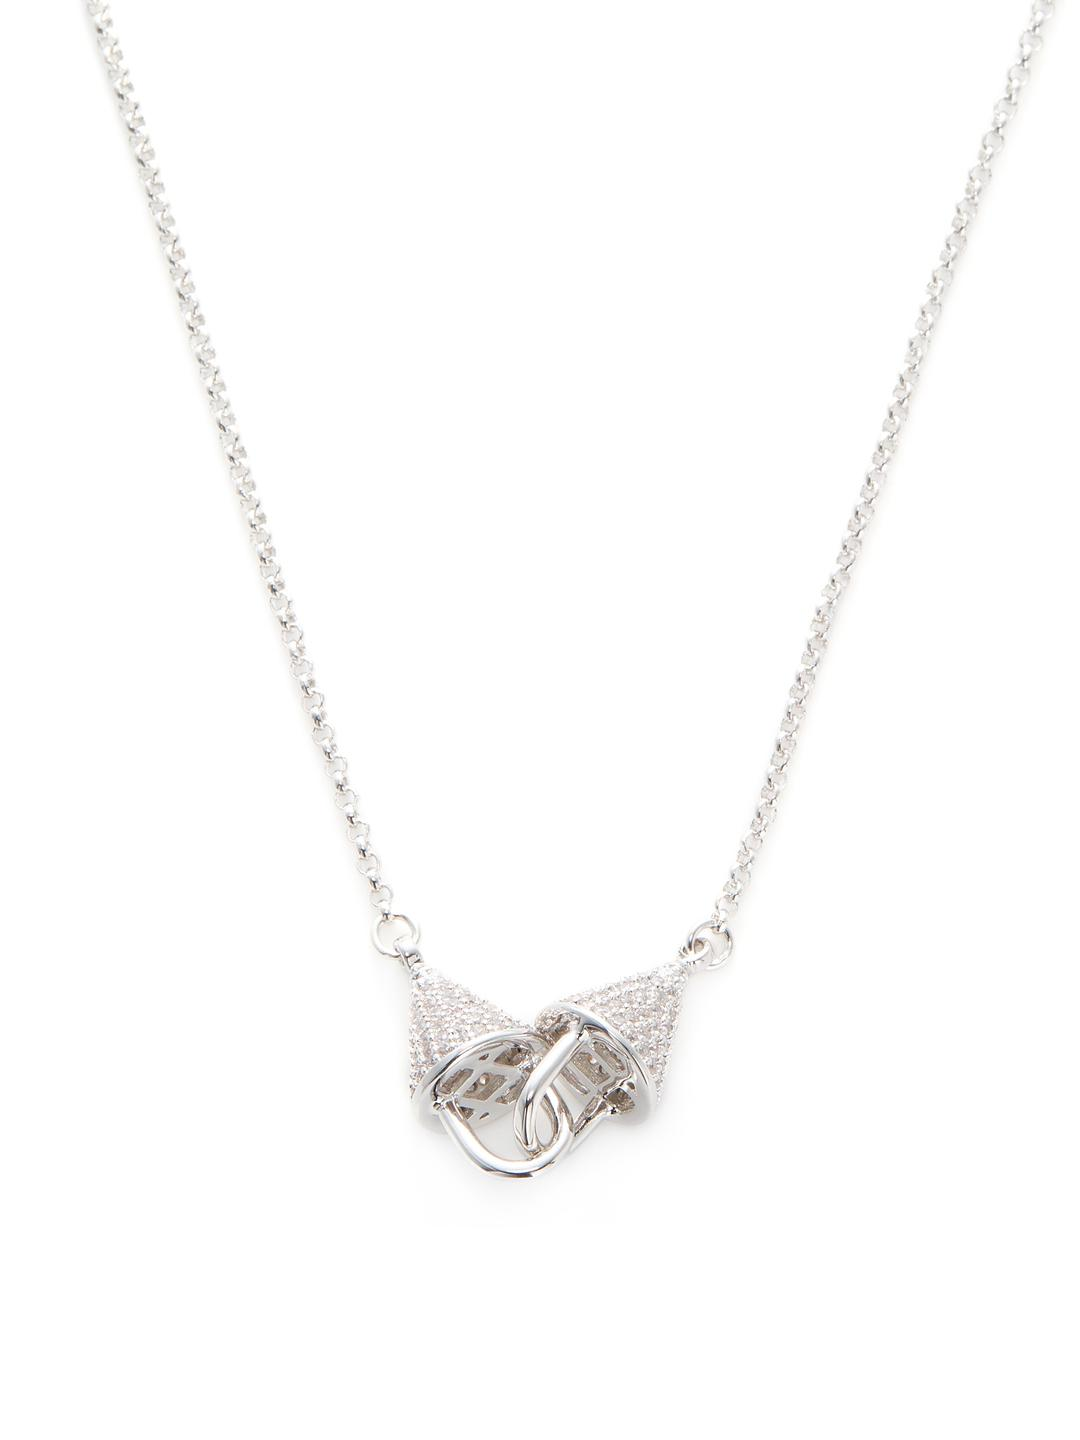 Womens Fractured Heart Pendant Necklace Eddie Borgo oN4vrXUlcd